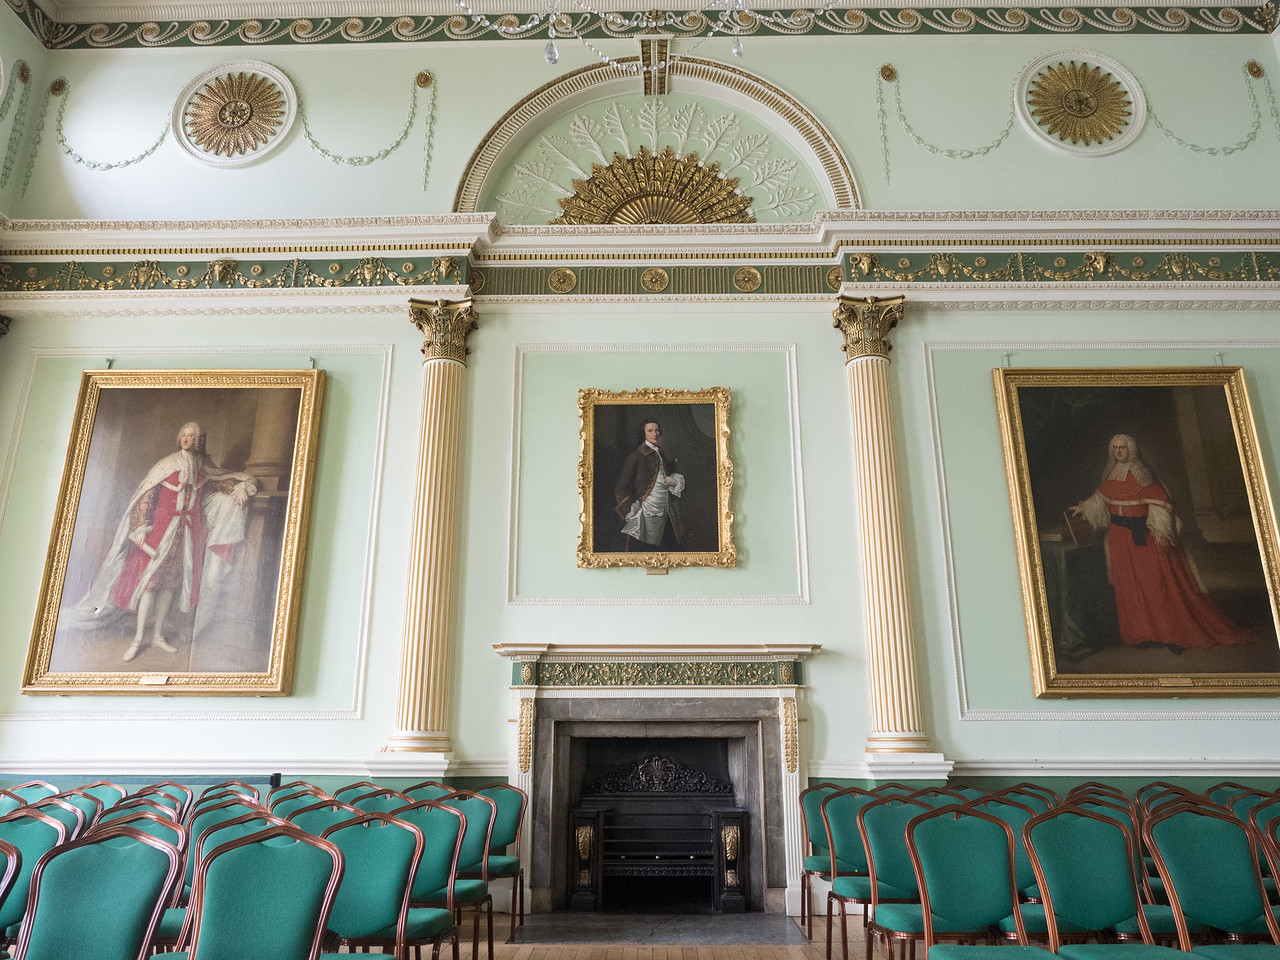 The banqueting hall in the Guildhall.